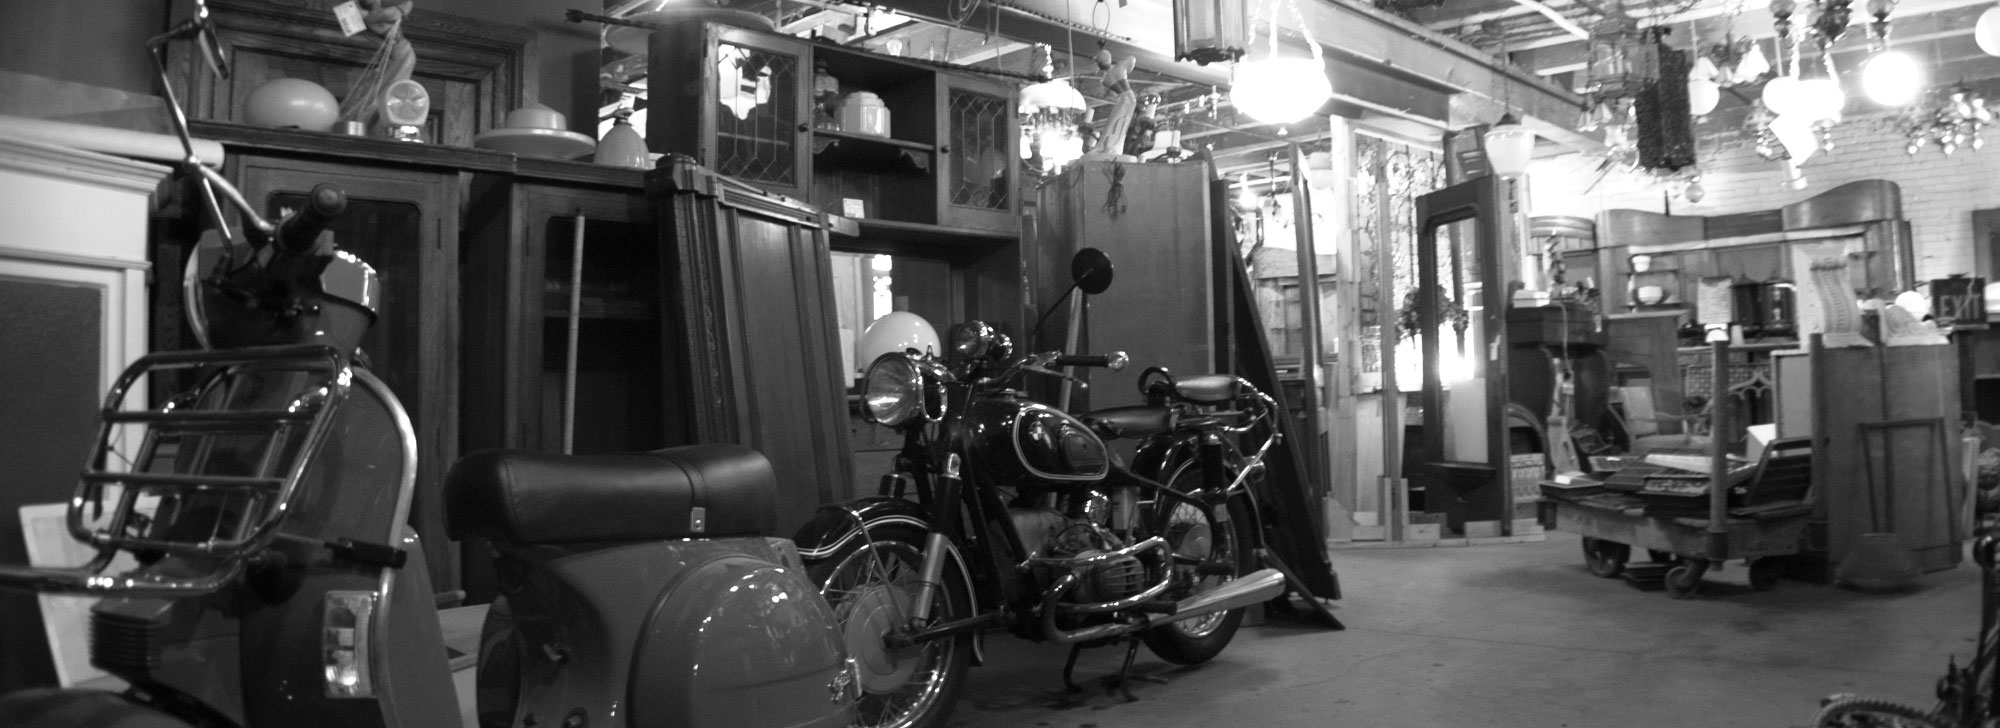 City Salvage showroom—vintage scooter and motorcycle.